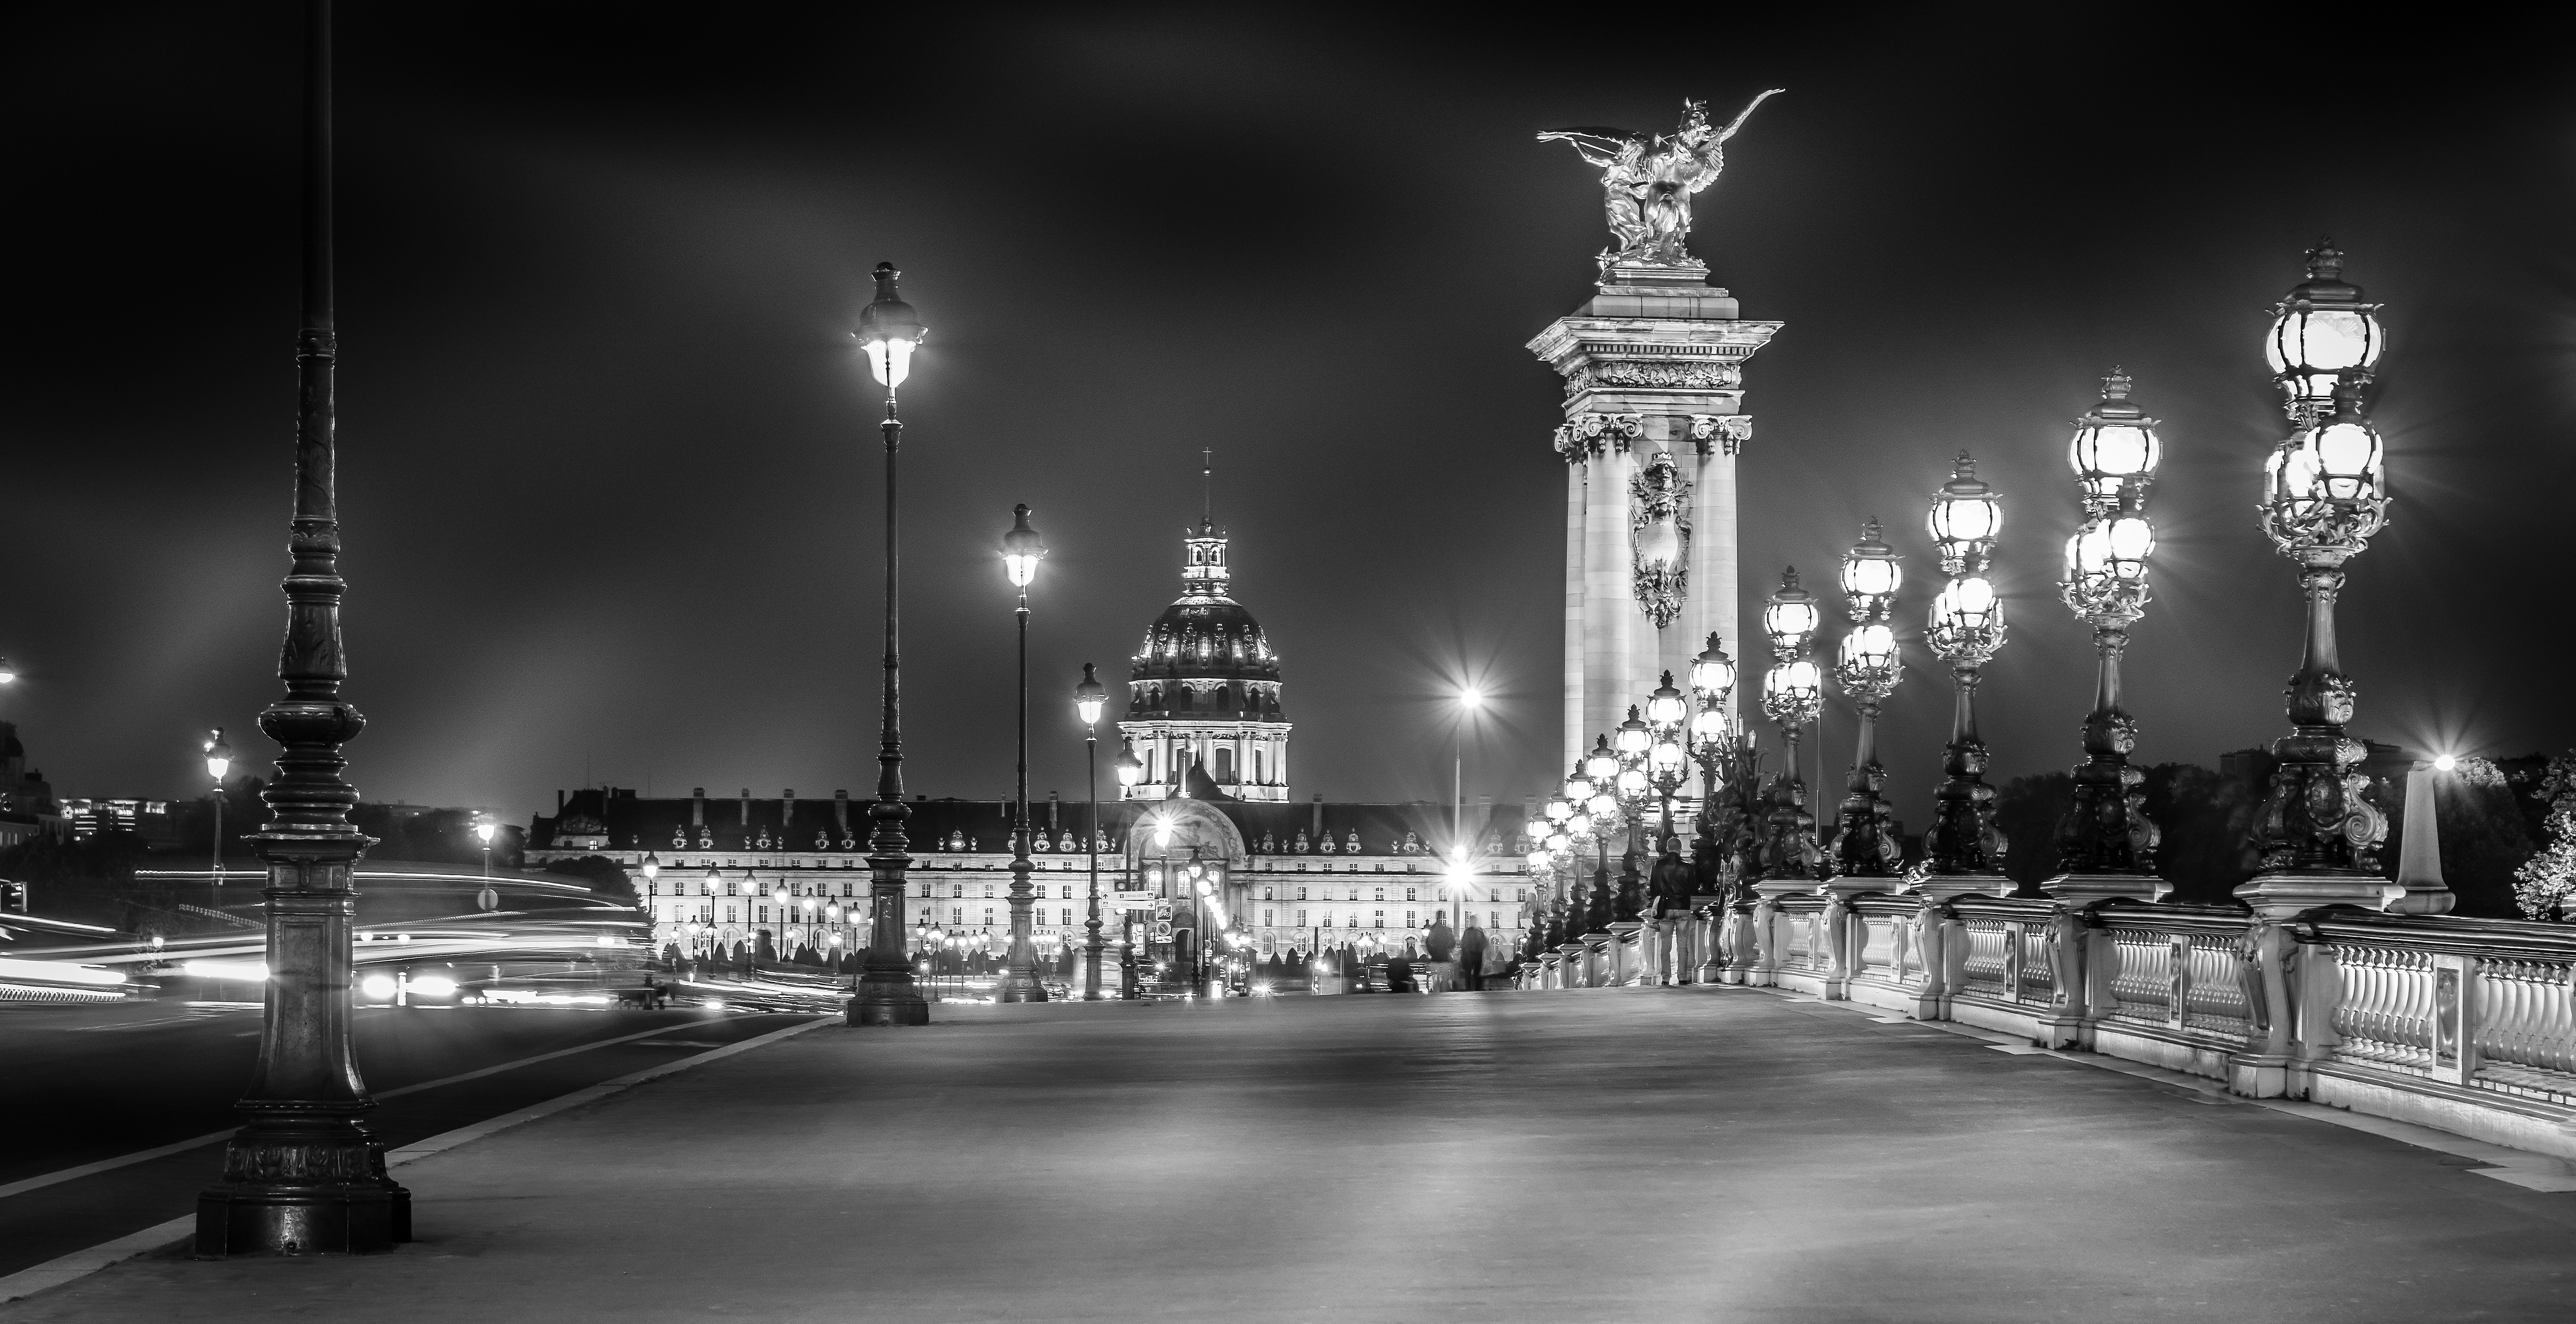 Paris_la_nuit36x18